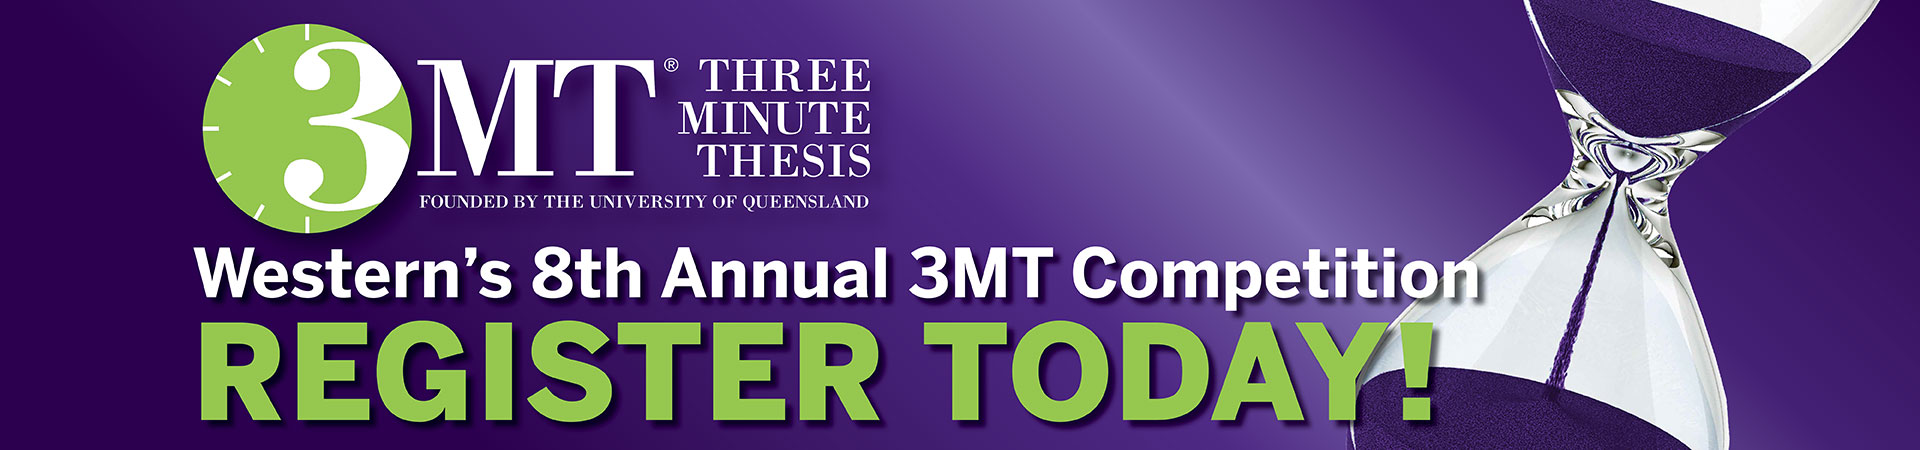 Western's 8th Annual Three Minute Thesis competition.  Register Today!